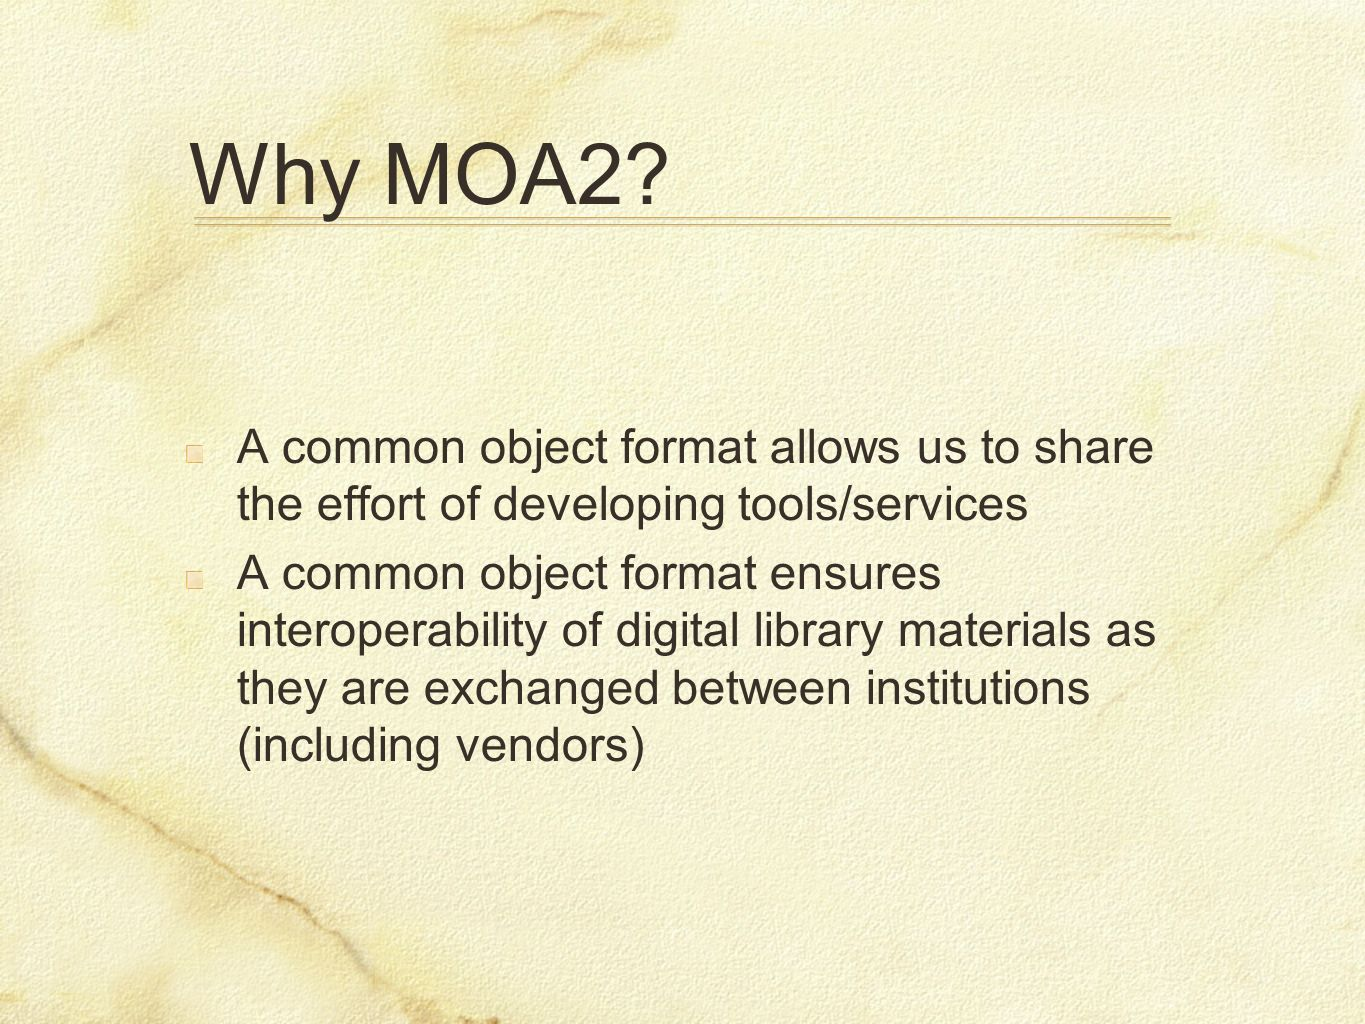 Why MOA2? A common object format allows us to share the effort of developing tools/services A common object format ensures interoperability of digital